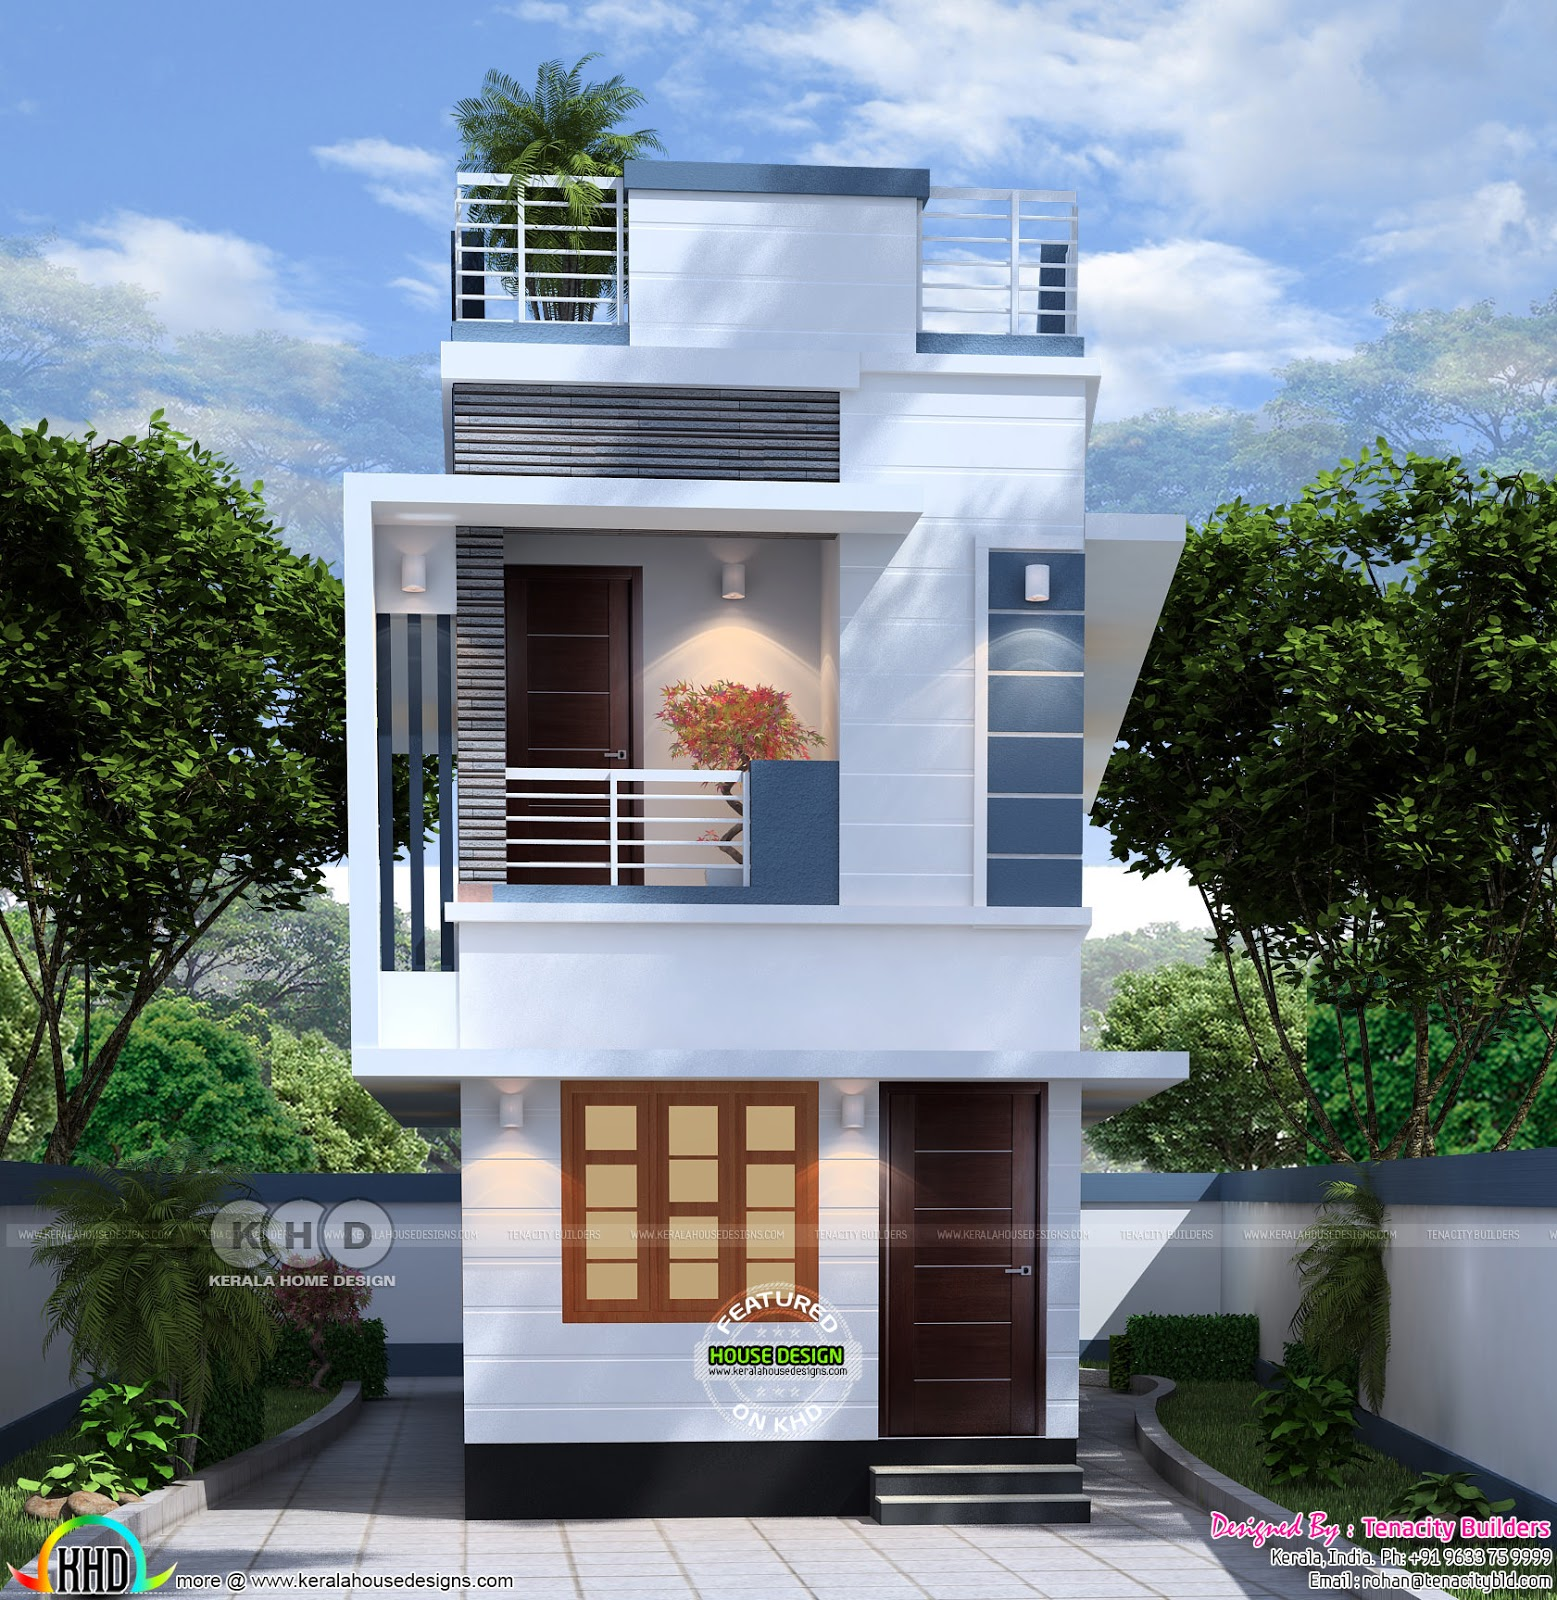 Home Design Of India Tiny Low Cost India Home Design Kerala Home Design Bloglovin